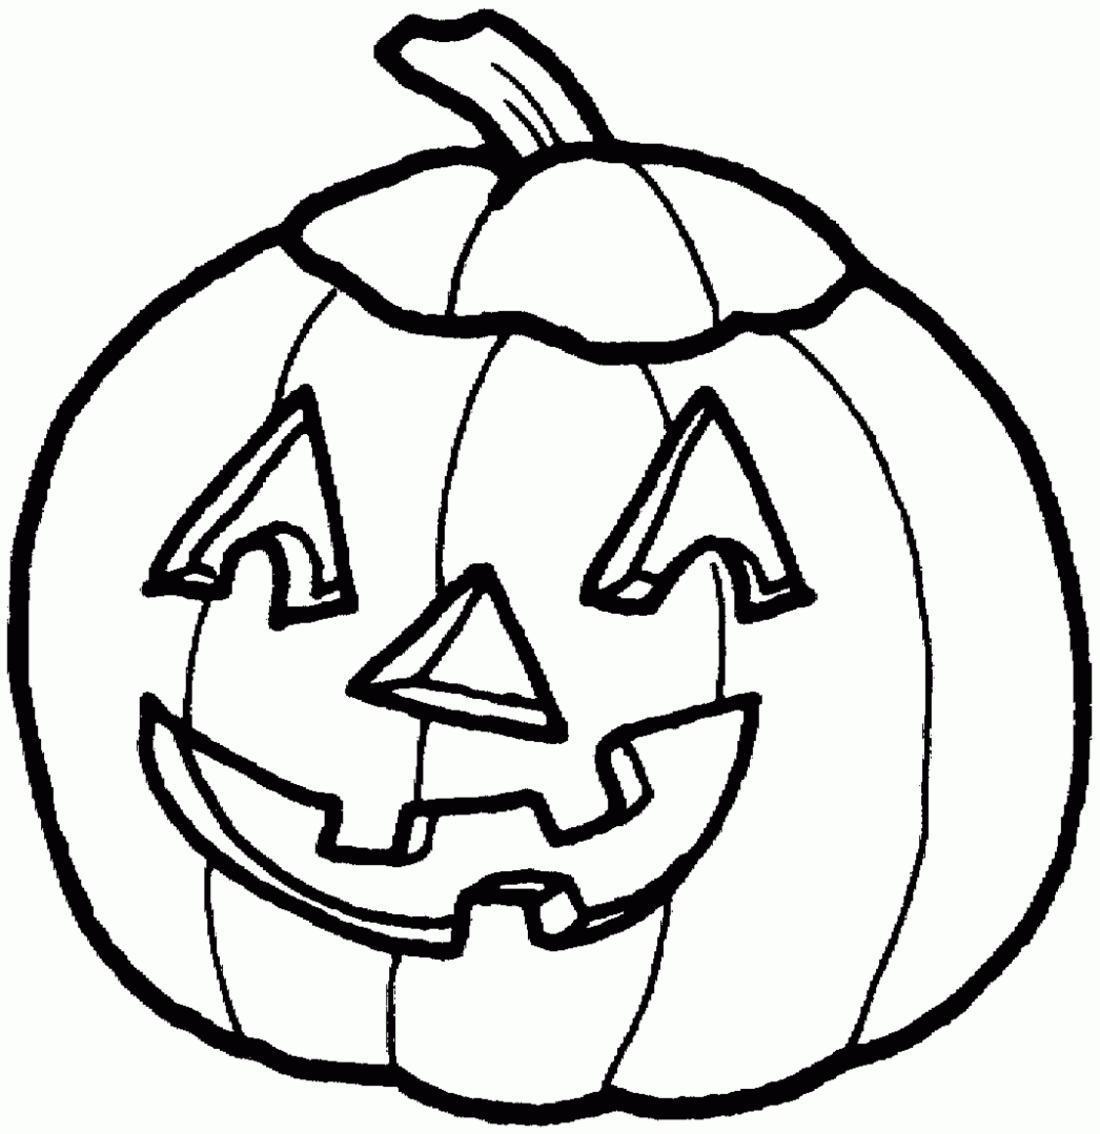 1100x1134 Pumpkin Coloring Pages Printable Lovely Pumpkin Outline Printable